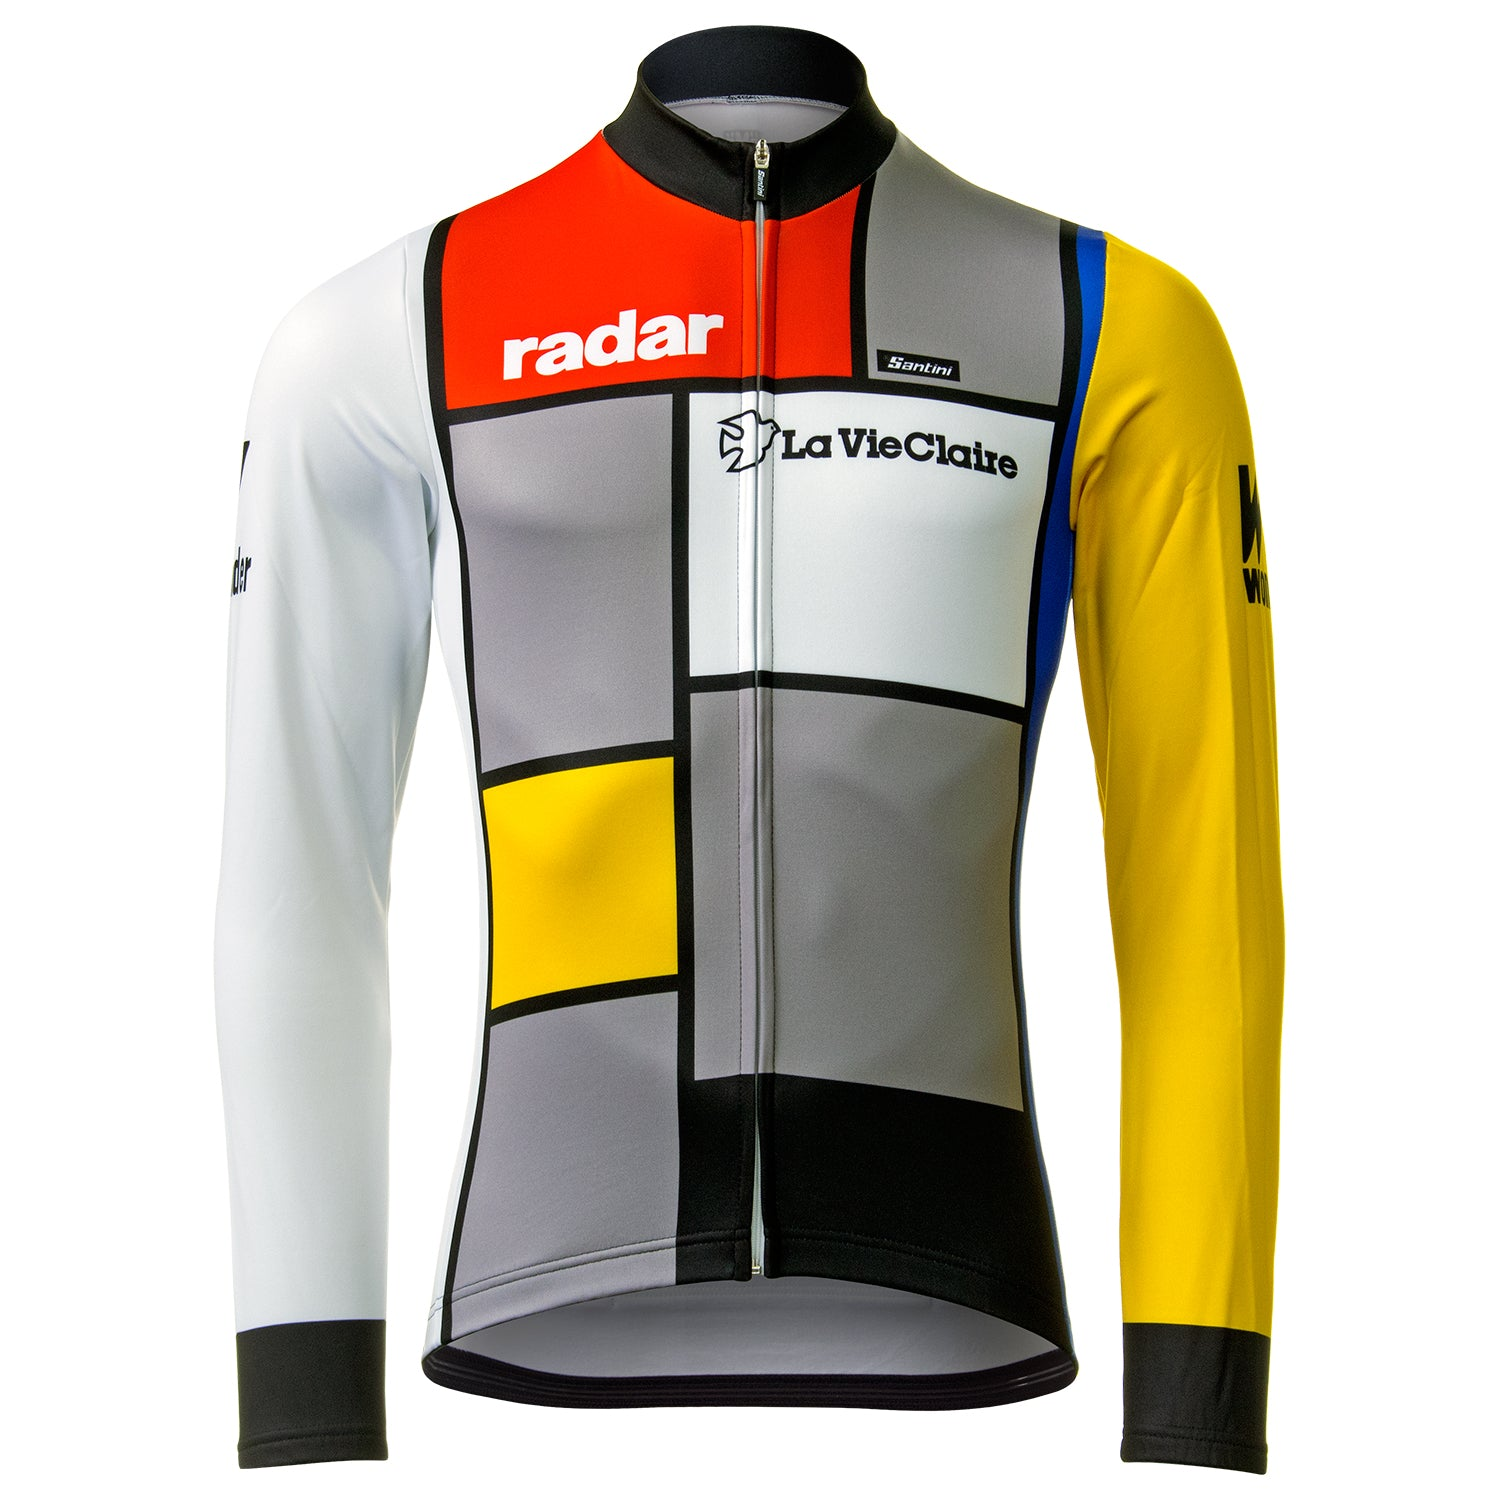 La Vie Claire/Wonder/Radar Retro Long Sleeve Jersey